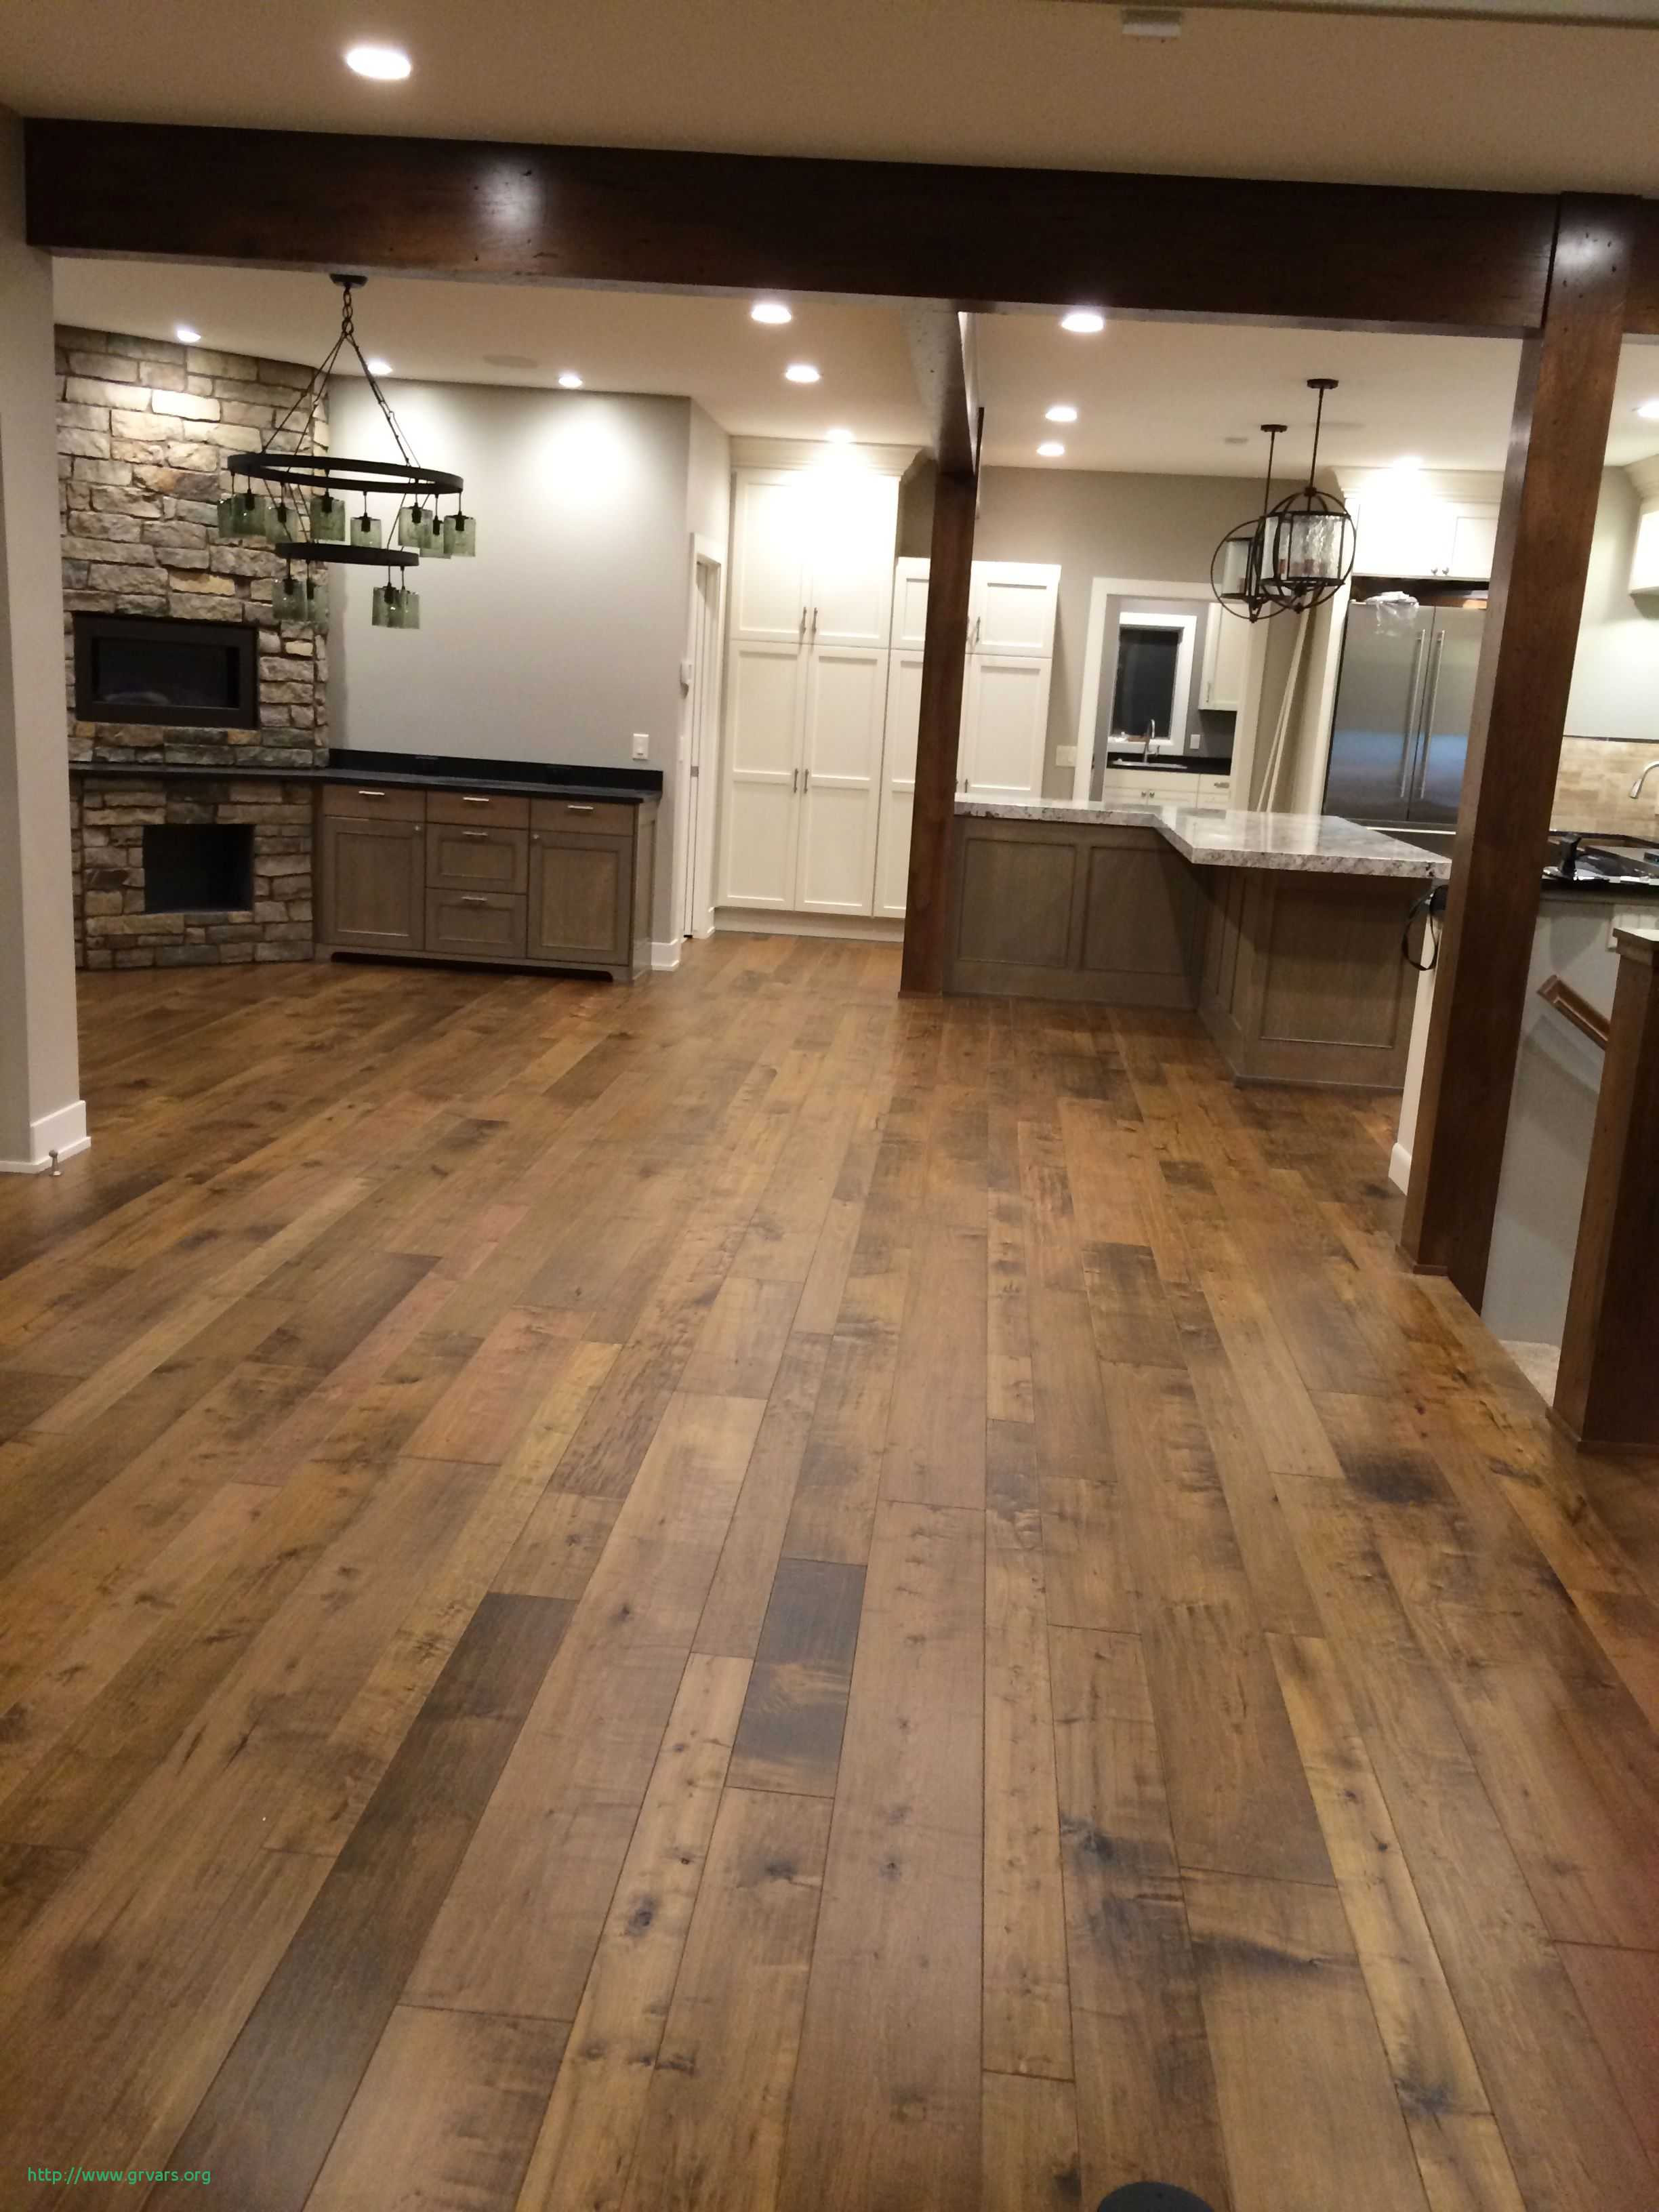 hardwood floor installation pittsburgh of 15 a‰lagant best way to install engineered wood flooring ideas blog in 15 photos of the 15 a‰lagant best way to install engineered wood flooring